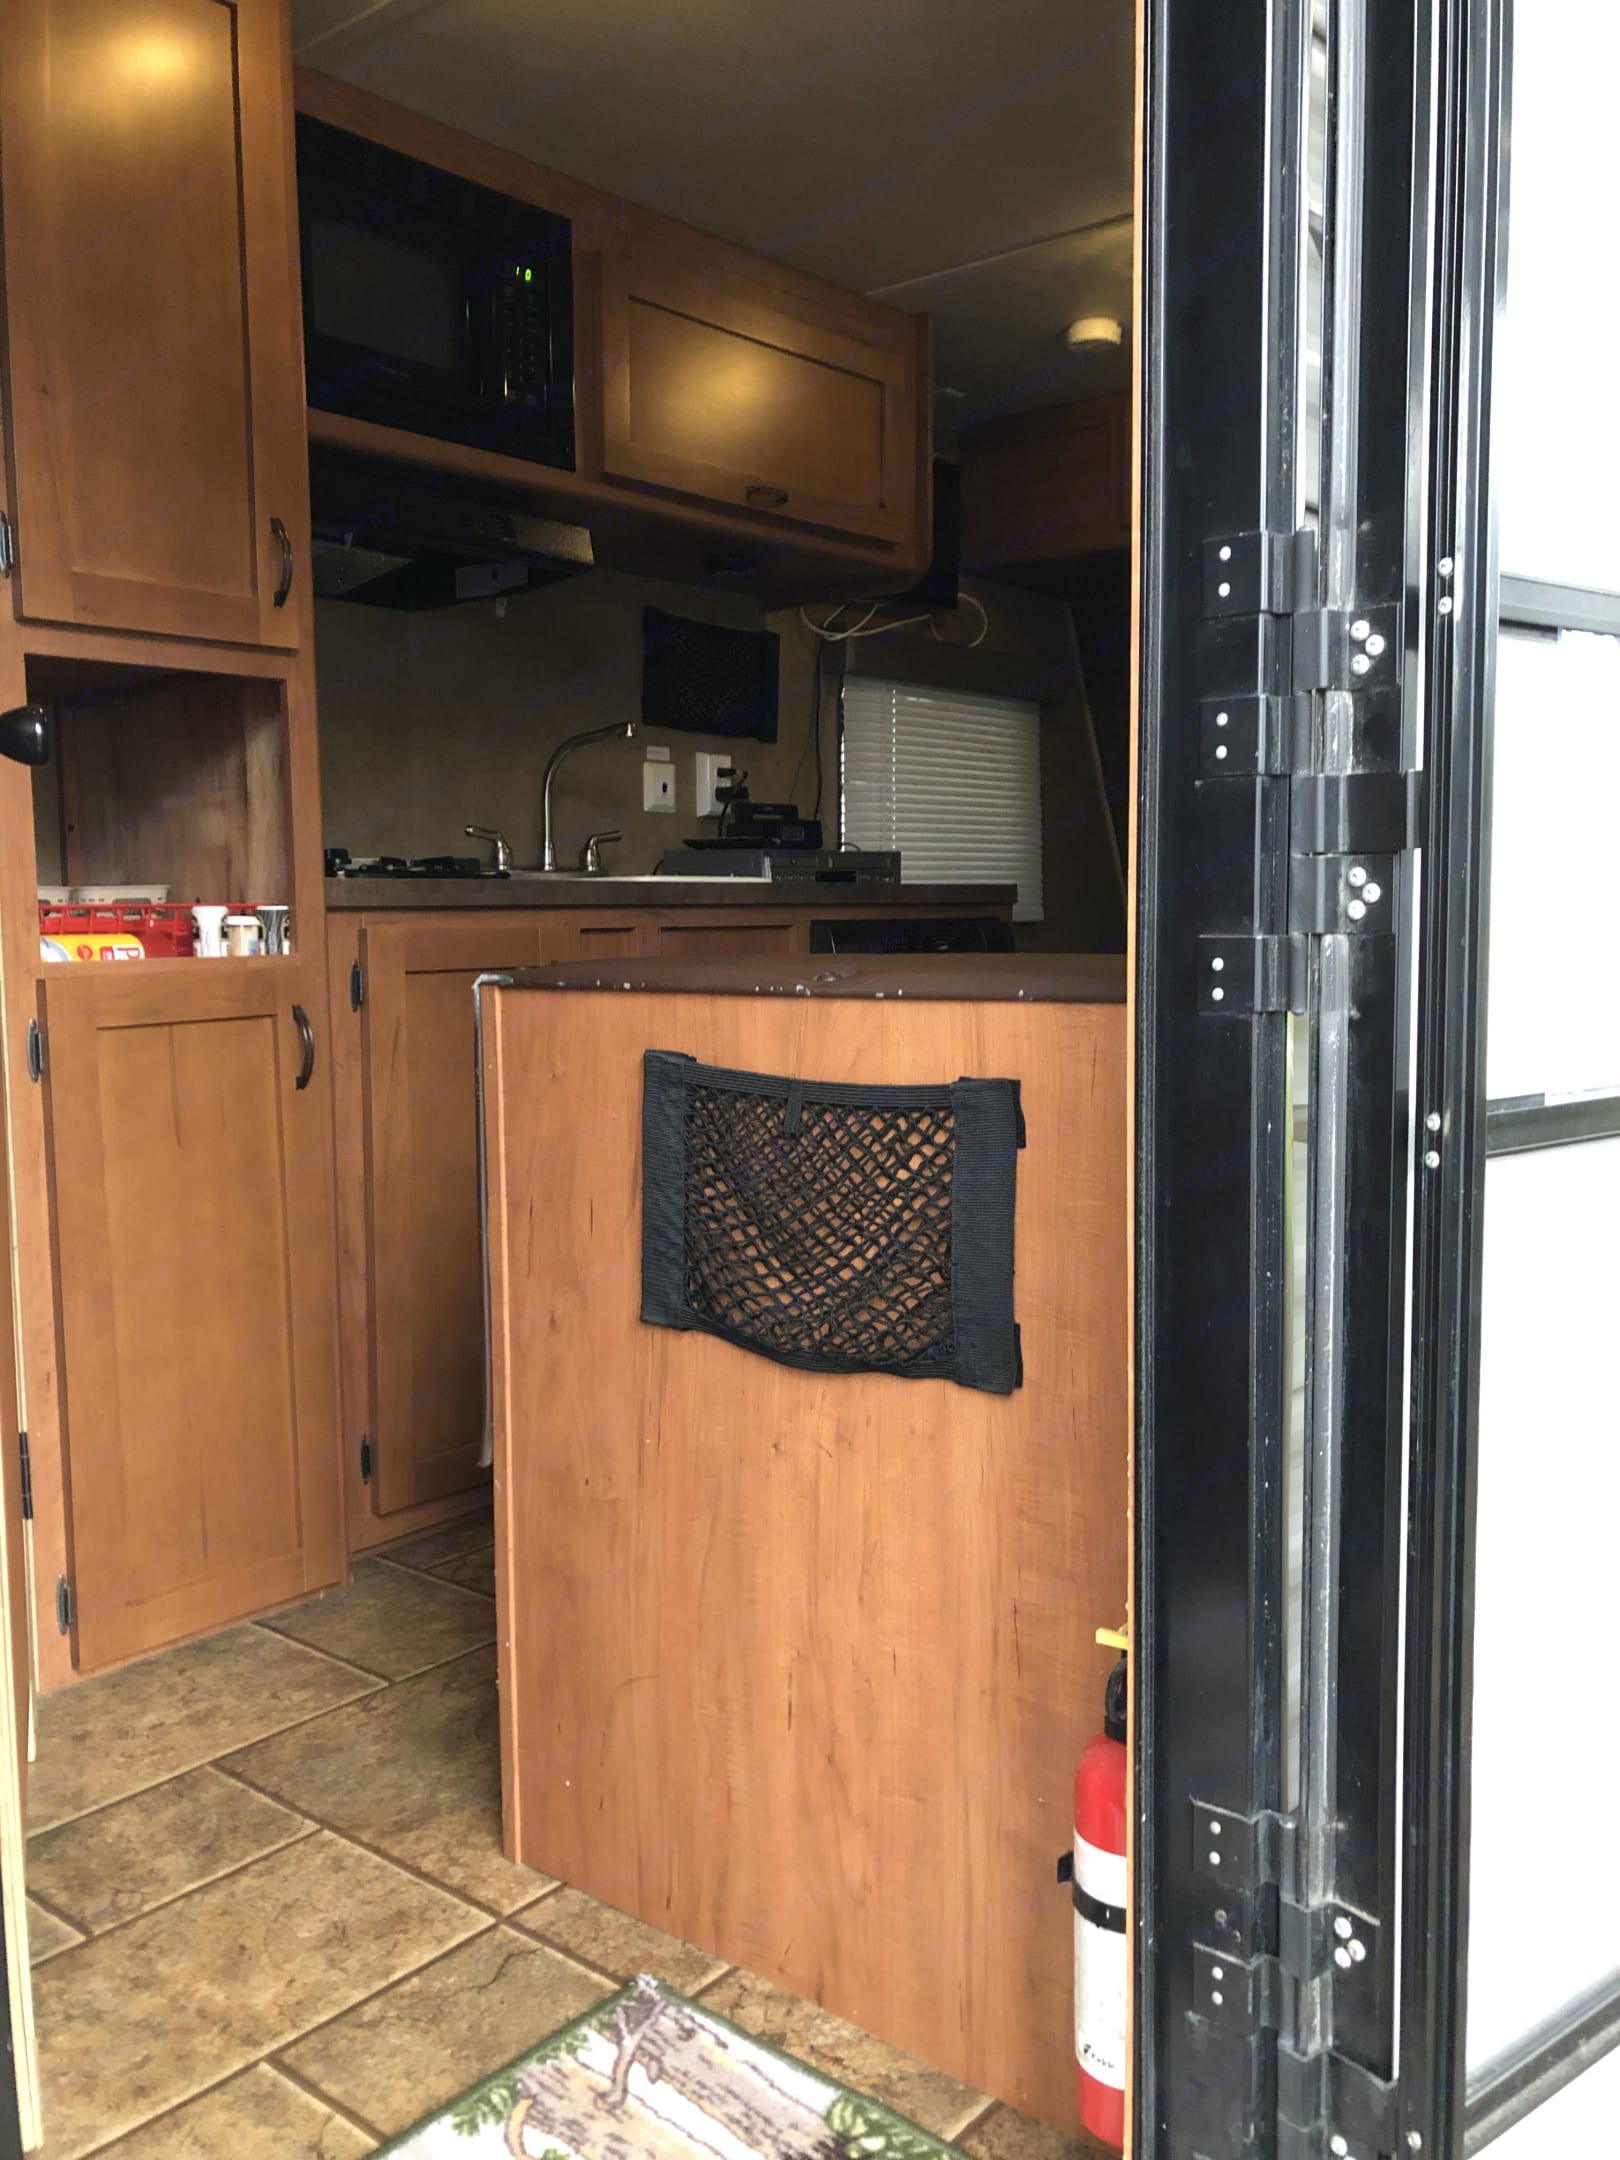 Entry way into the camper has a pouch for easy storage, a fire extinguisher easy to grab and an open view into the camper area. There is storage on the left side of the door way, as well.. Forest River Wolf Pup 2014